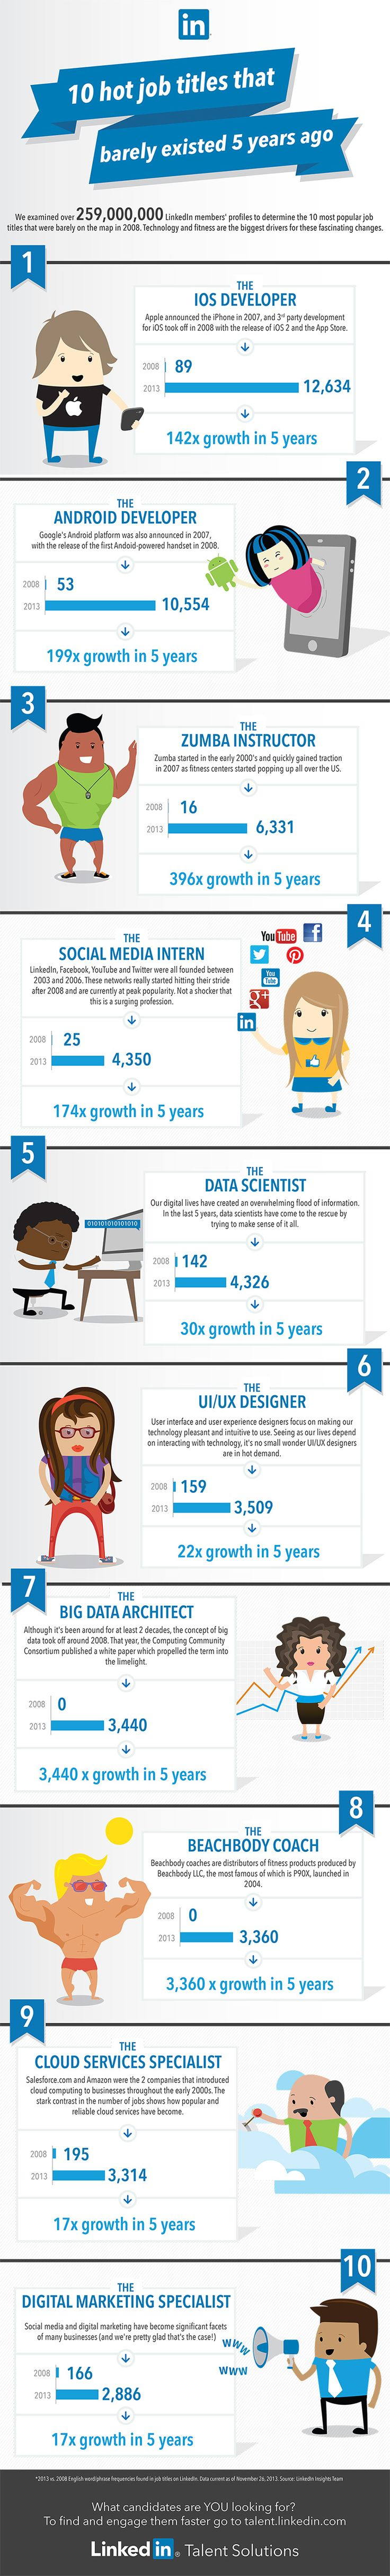 Top 10 Job Titles That Didnu0027t Exist 5 Years Ago [INFOGRAPHIC]